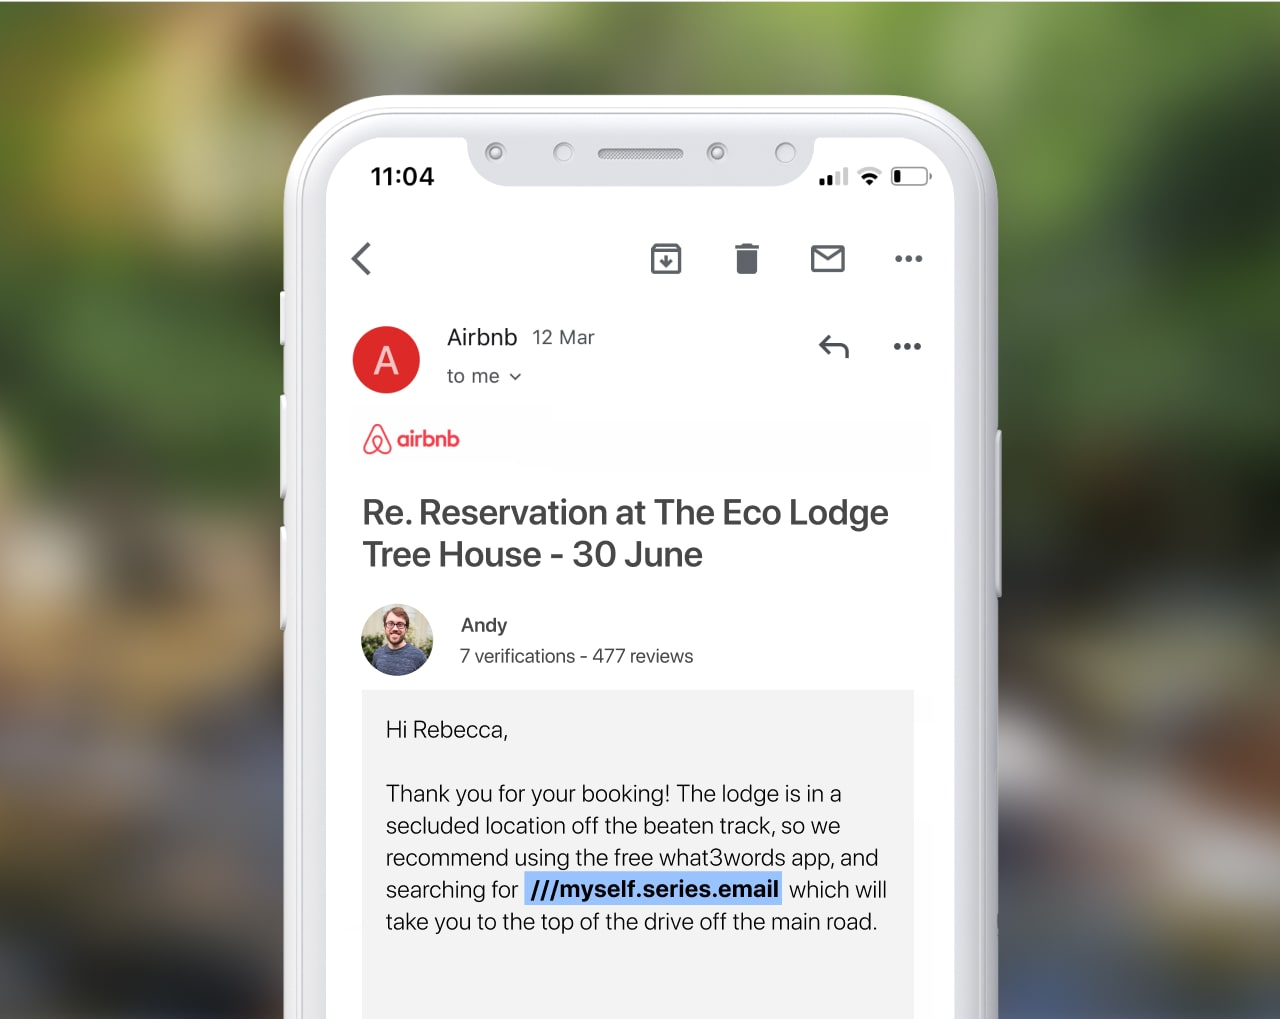 Screenshot of an airbnb email